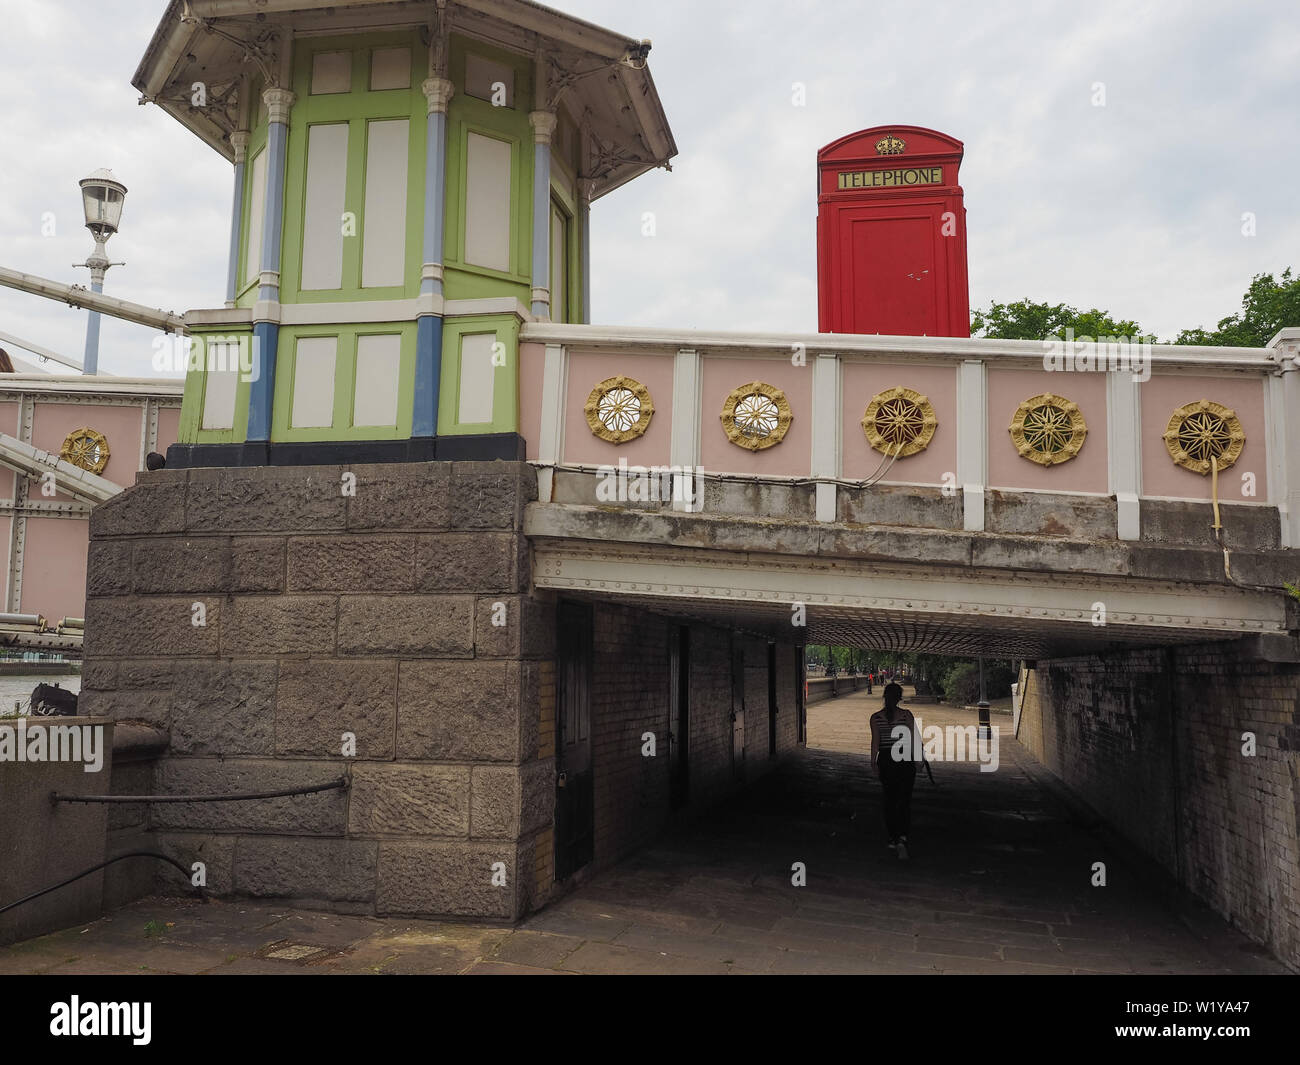 LONDON, UK - CIRCA JUNE 2019: Red telephone box on Albert Bridge crossing River Thames - Stock Image